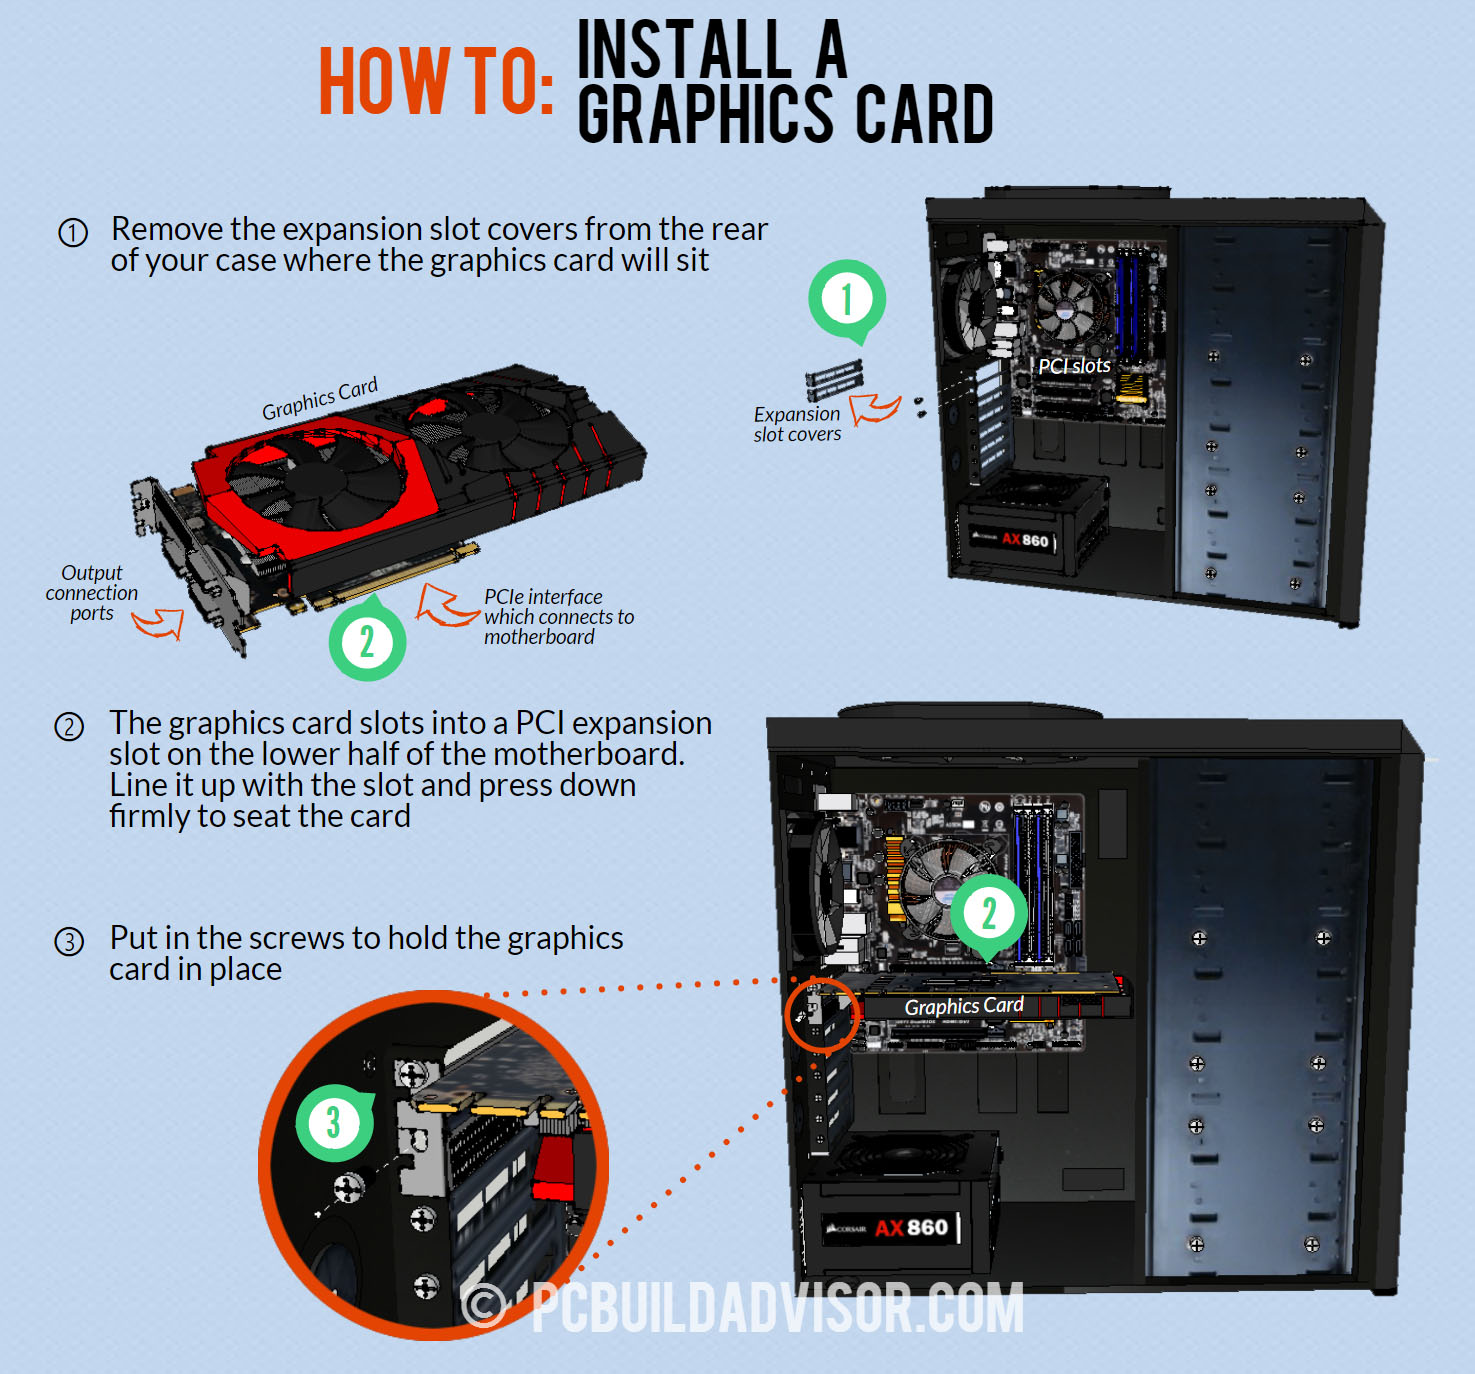 How to Upgrade the Acer Aspire TC-780 Desktop Computer With